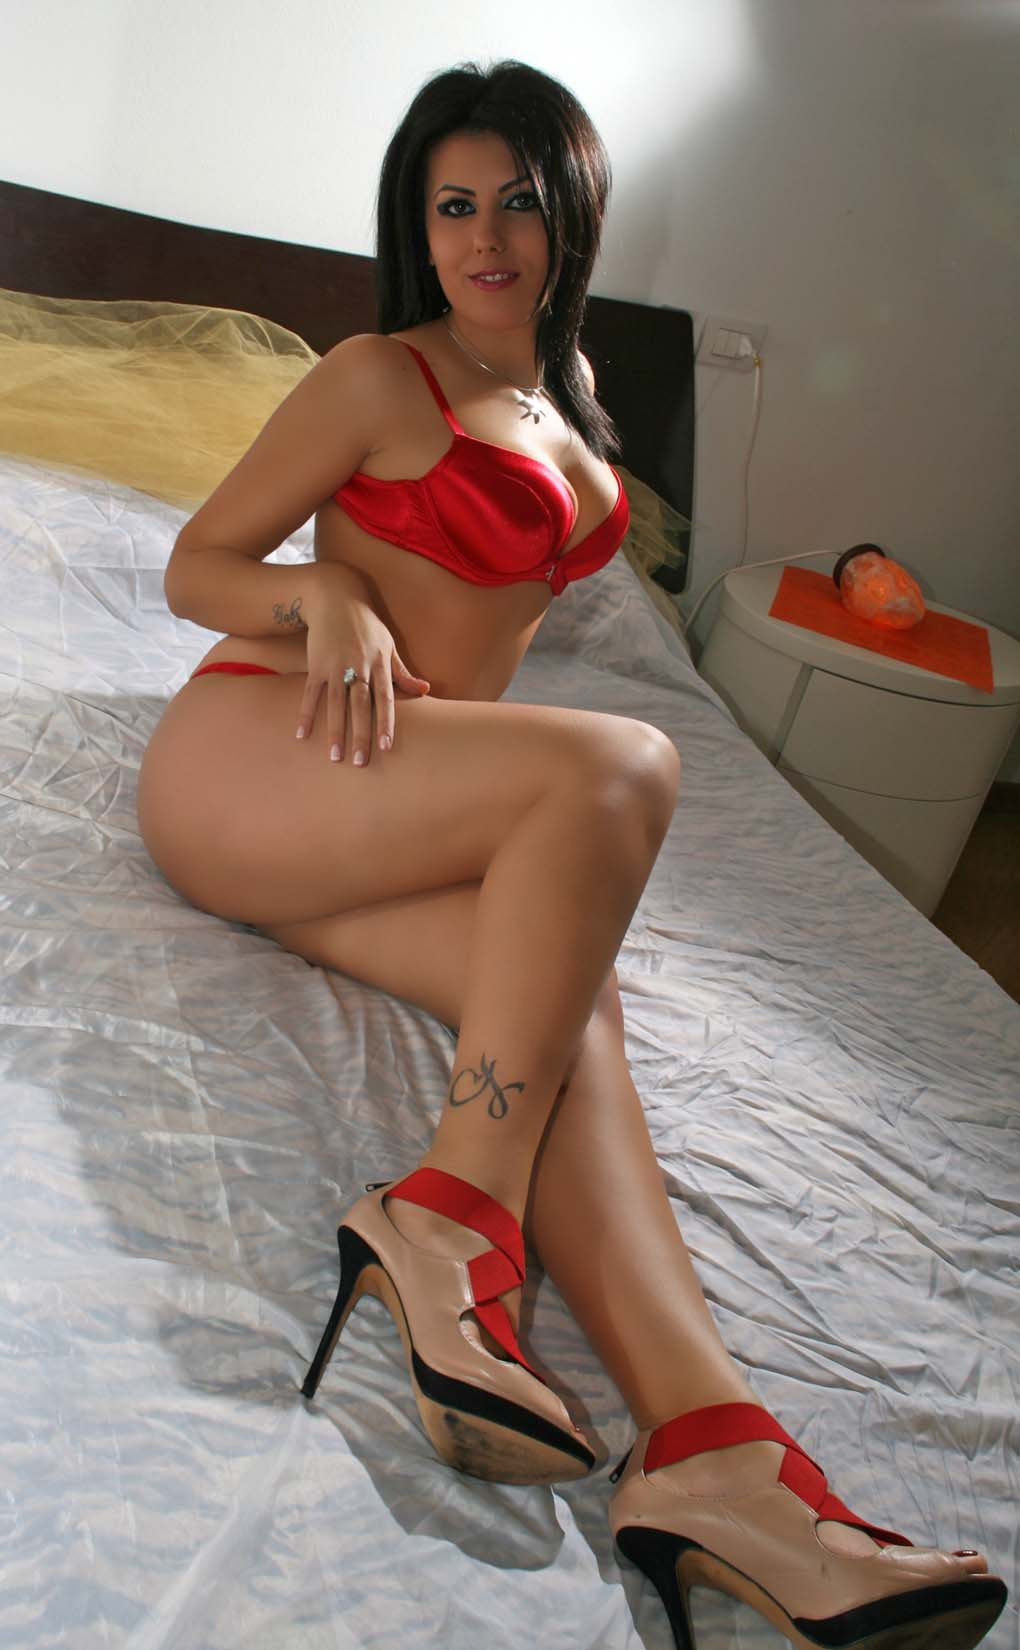 Escorts in amsterdam